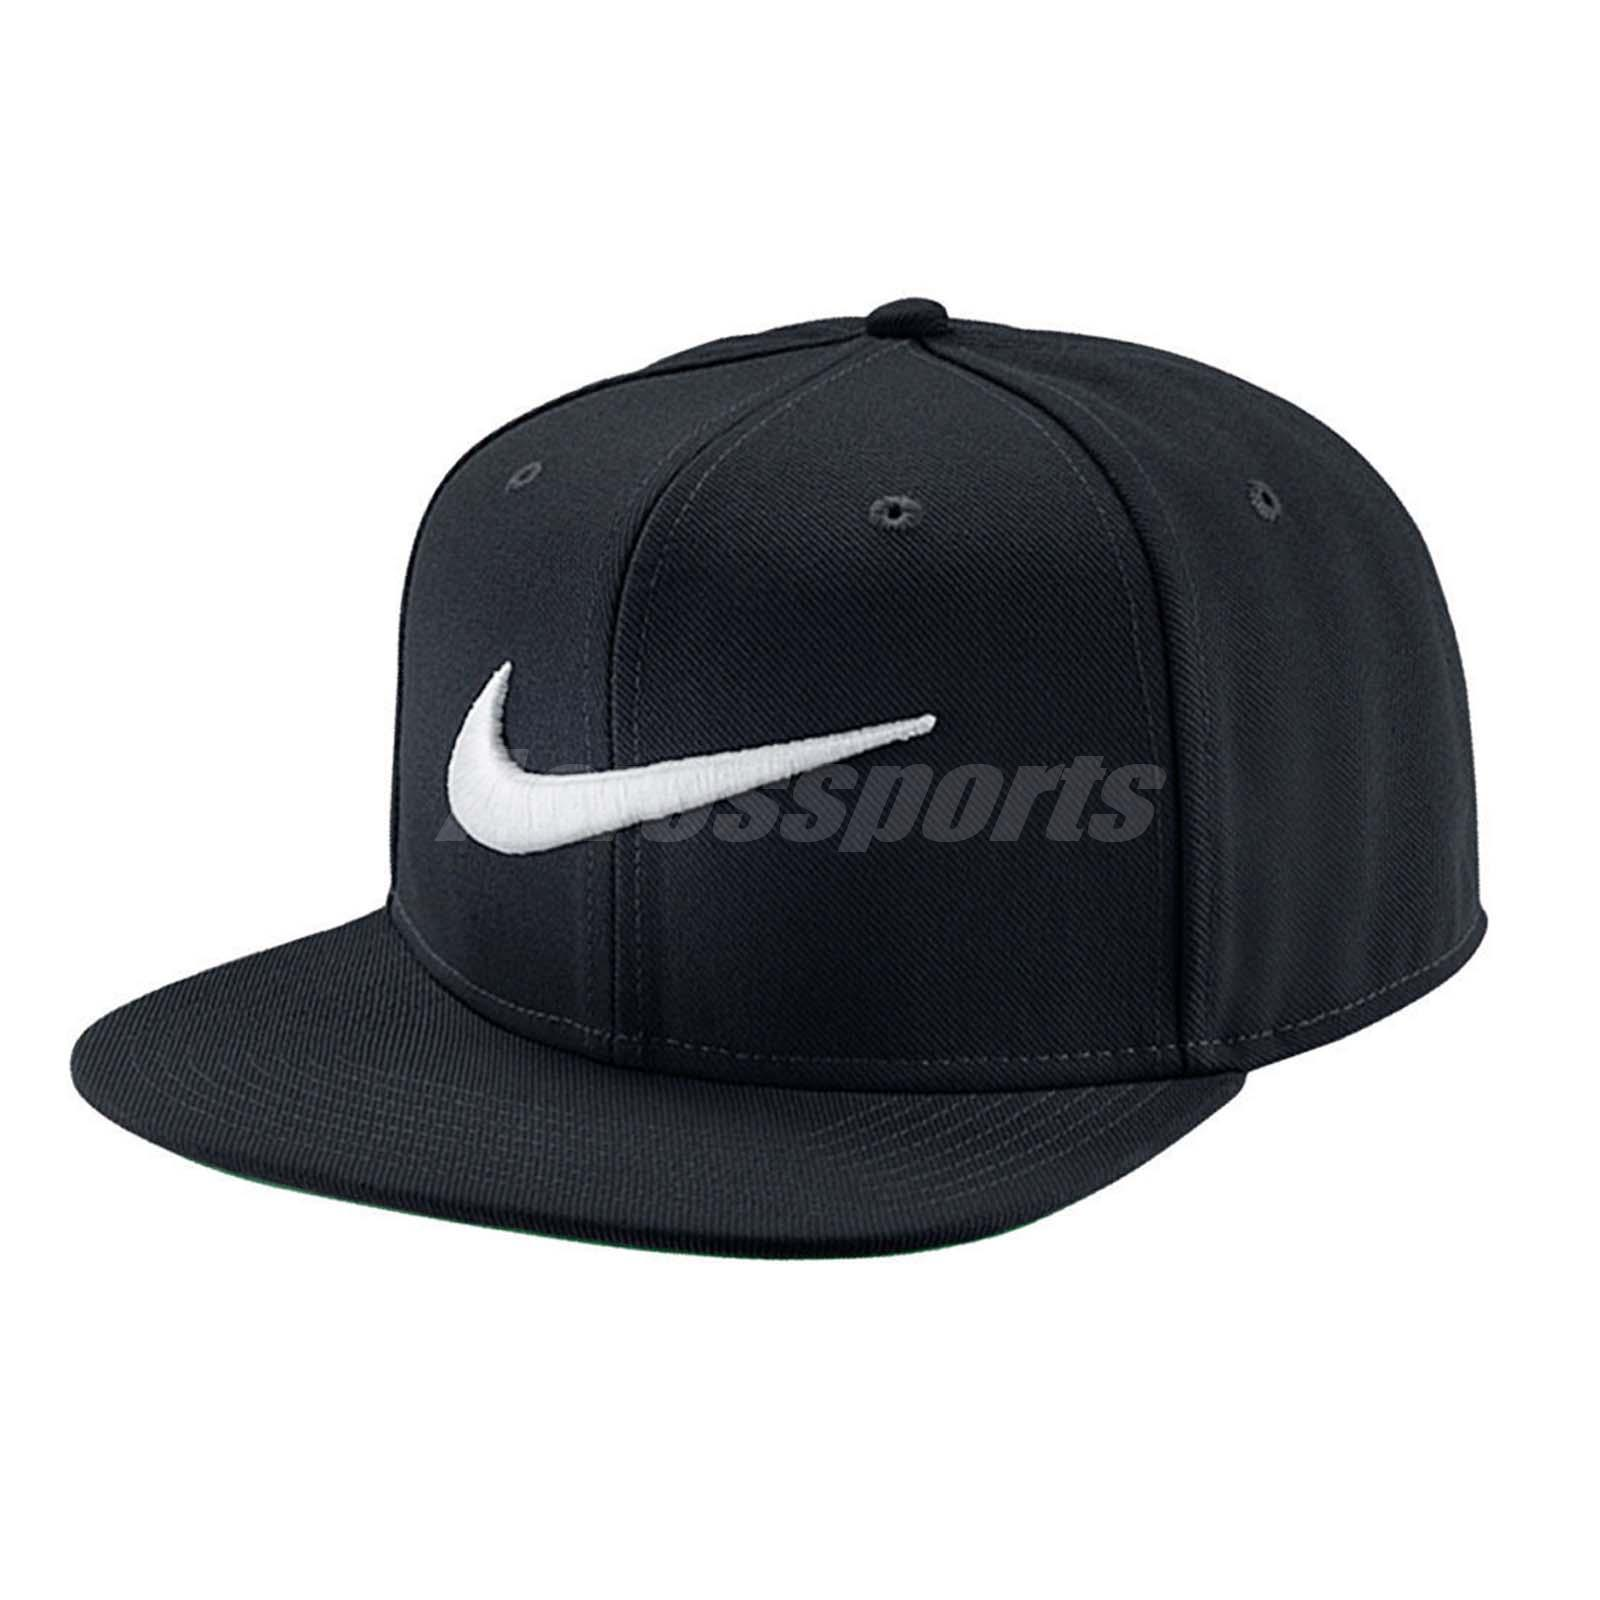 33367b8931a Details about Nike Swoosh Pro Black White Embroidery Mens Snapback  Adjustable Hat 639534-011